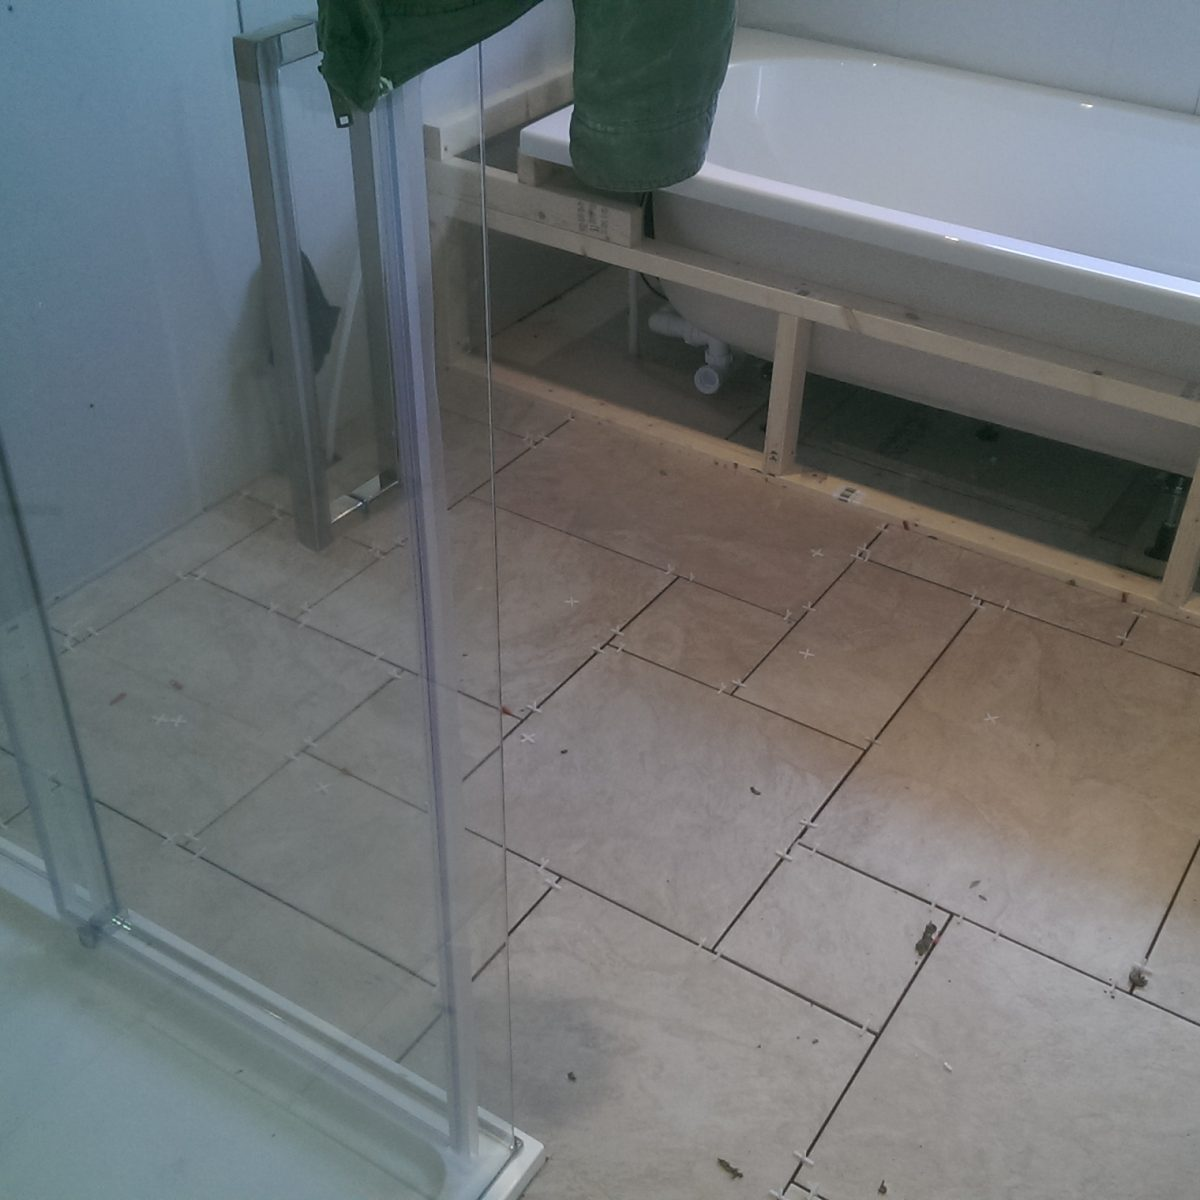 Bathroom floor tiling